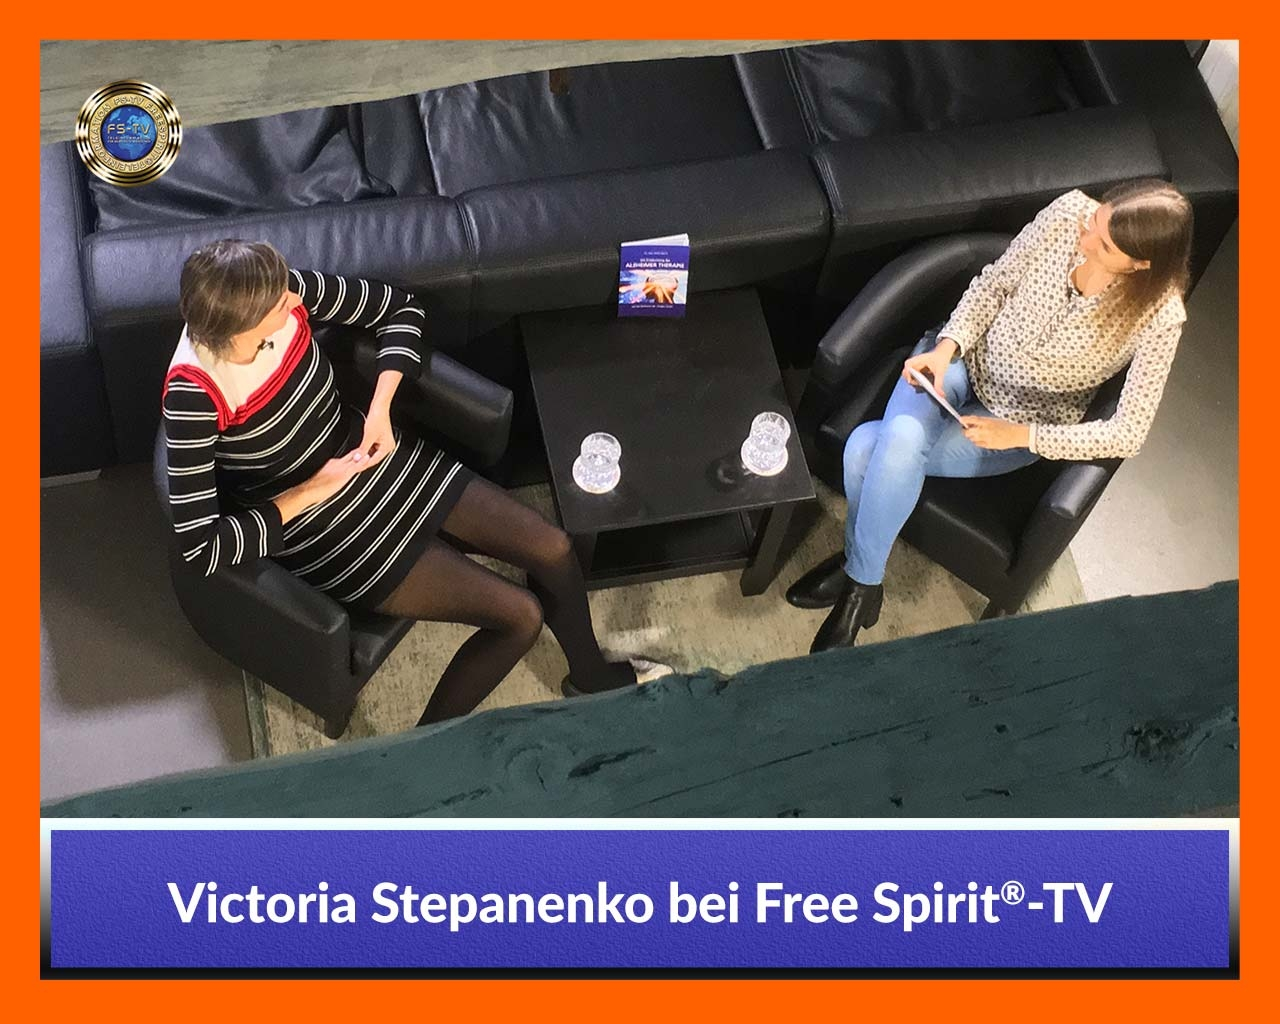 Galleriebild-Victoria-Stepanenko-10